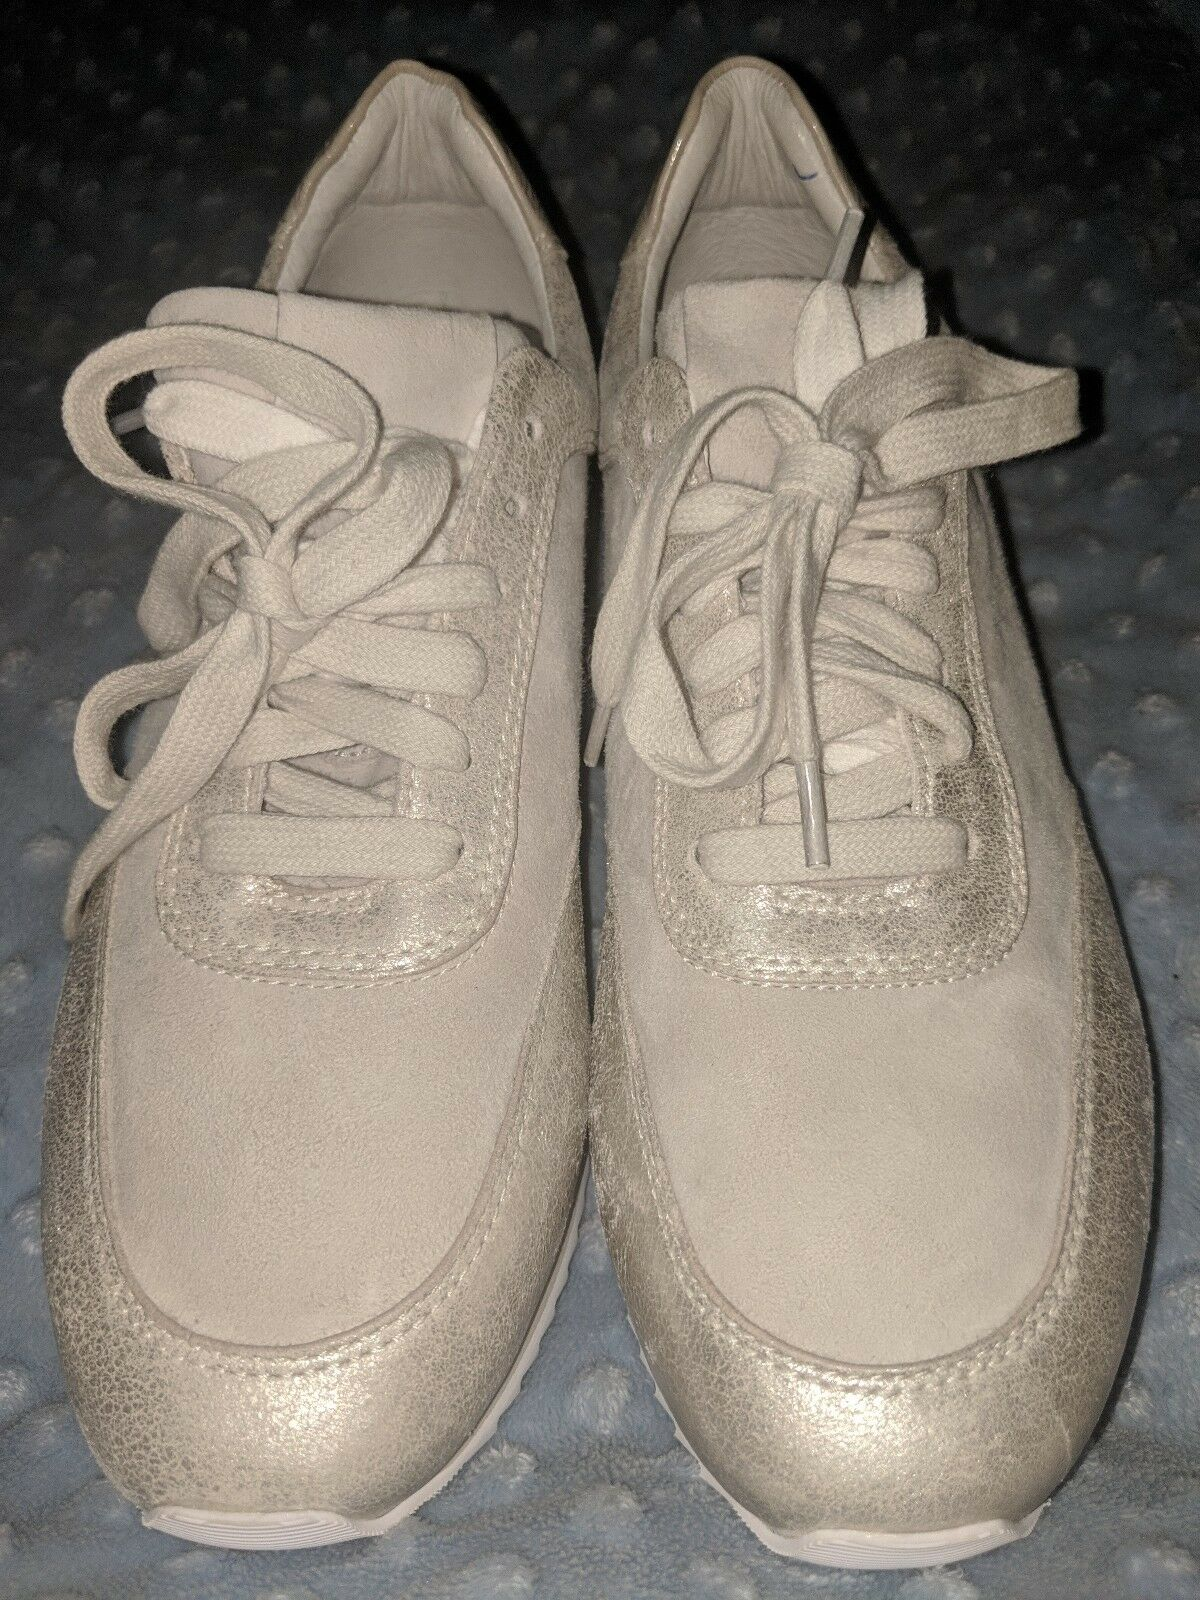 Sneakers and Athletic Johnston & Murphy Jules Ice Metallic Leather Kid